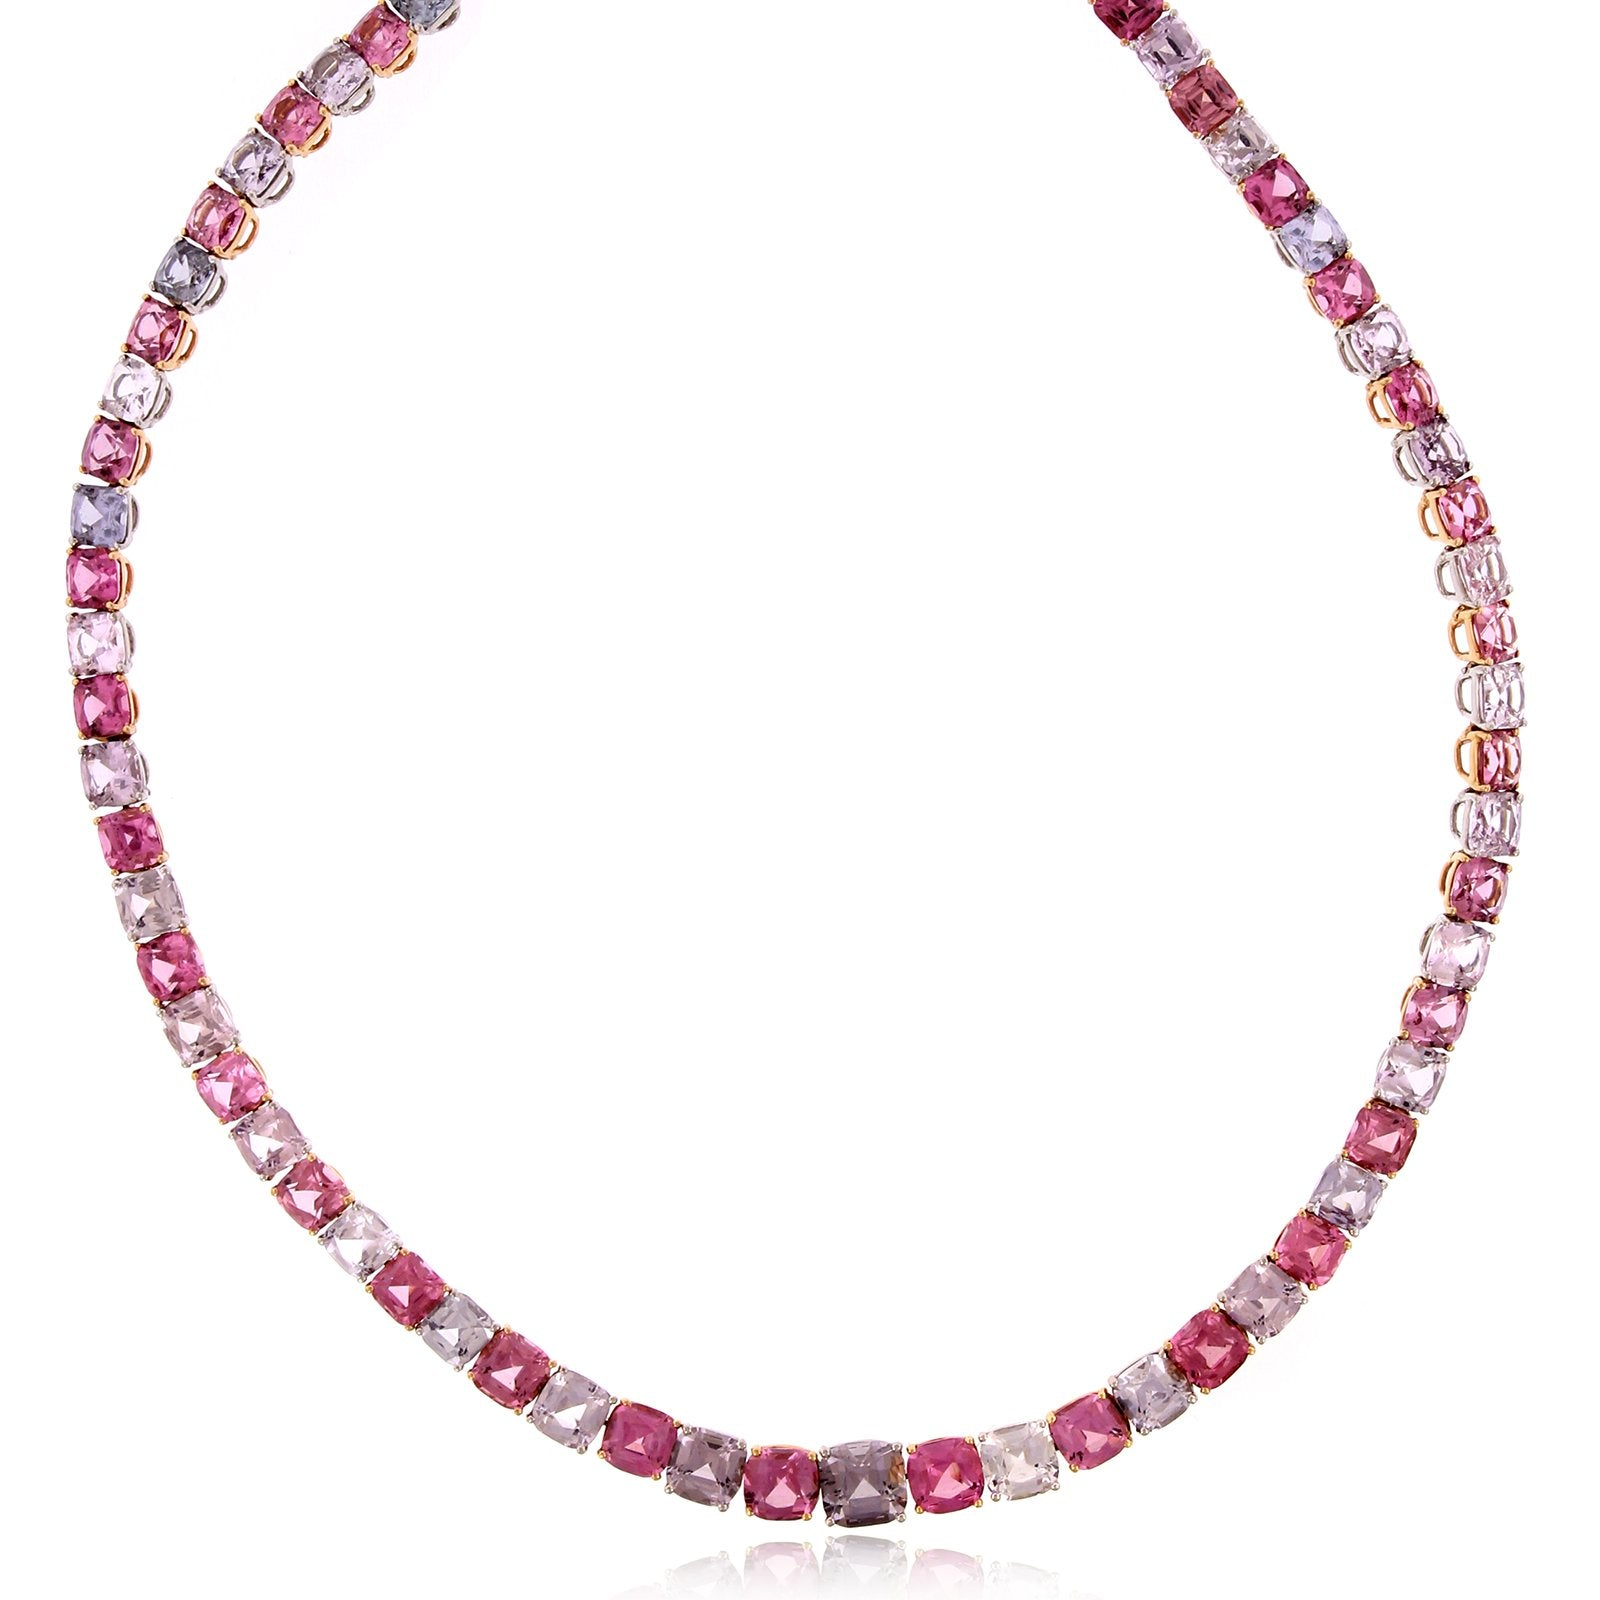 Platinum and 18K Rose Gold Pink and Grey Spinel Necklace